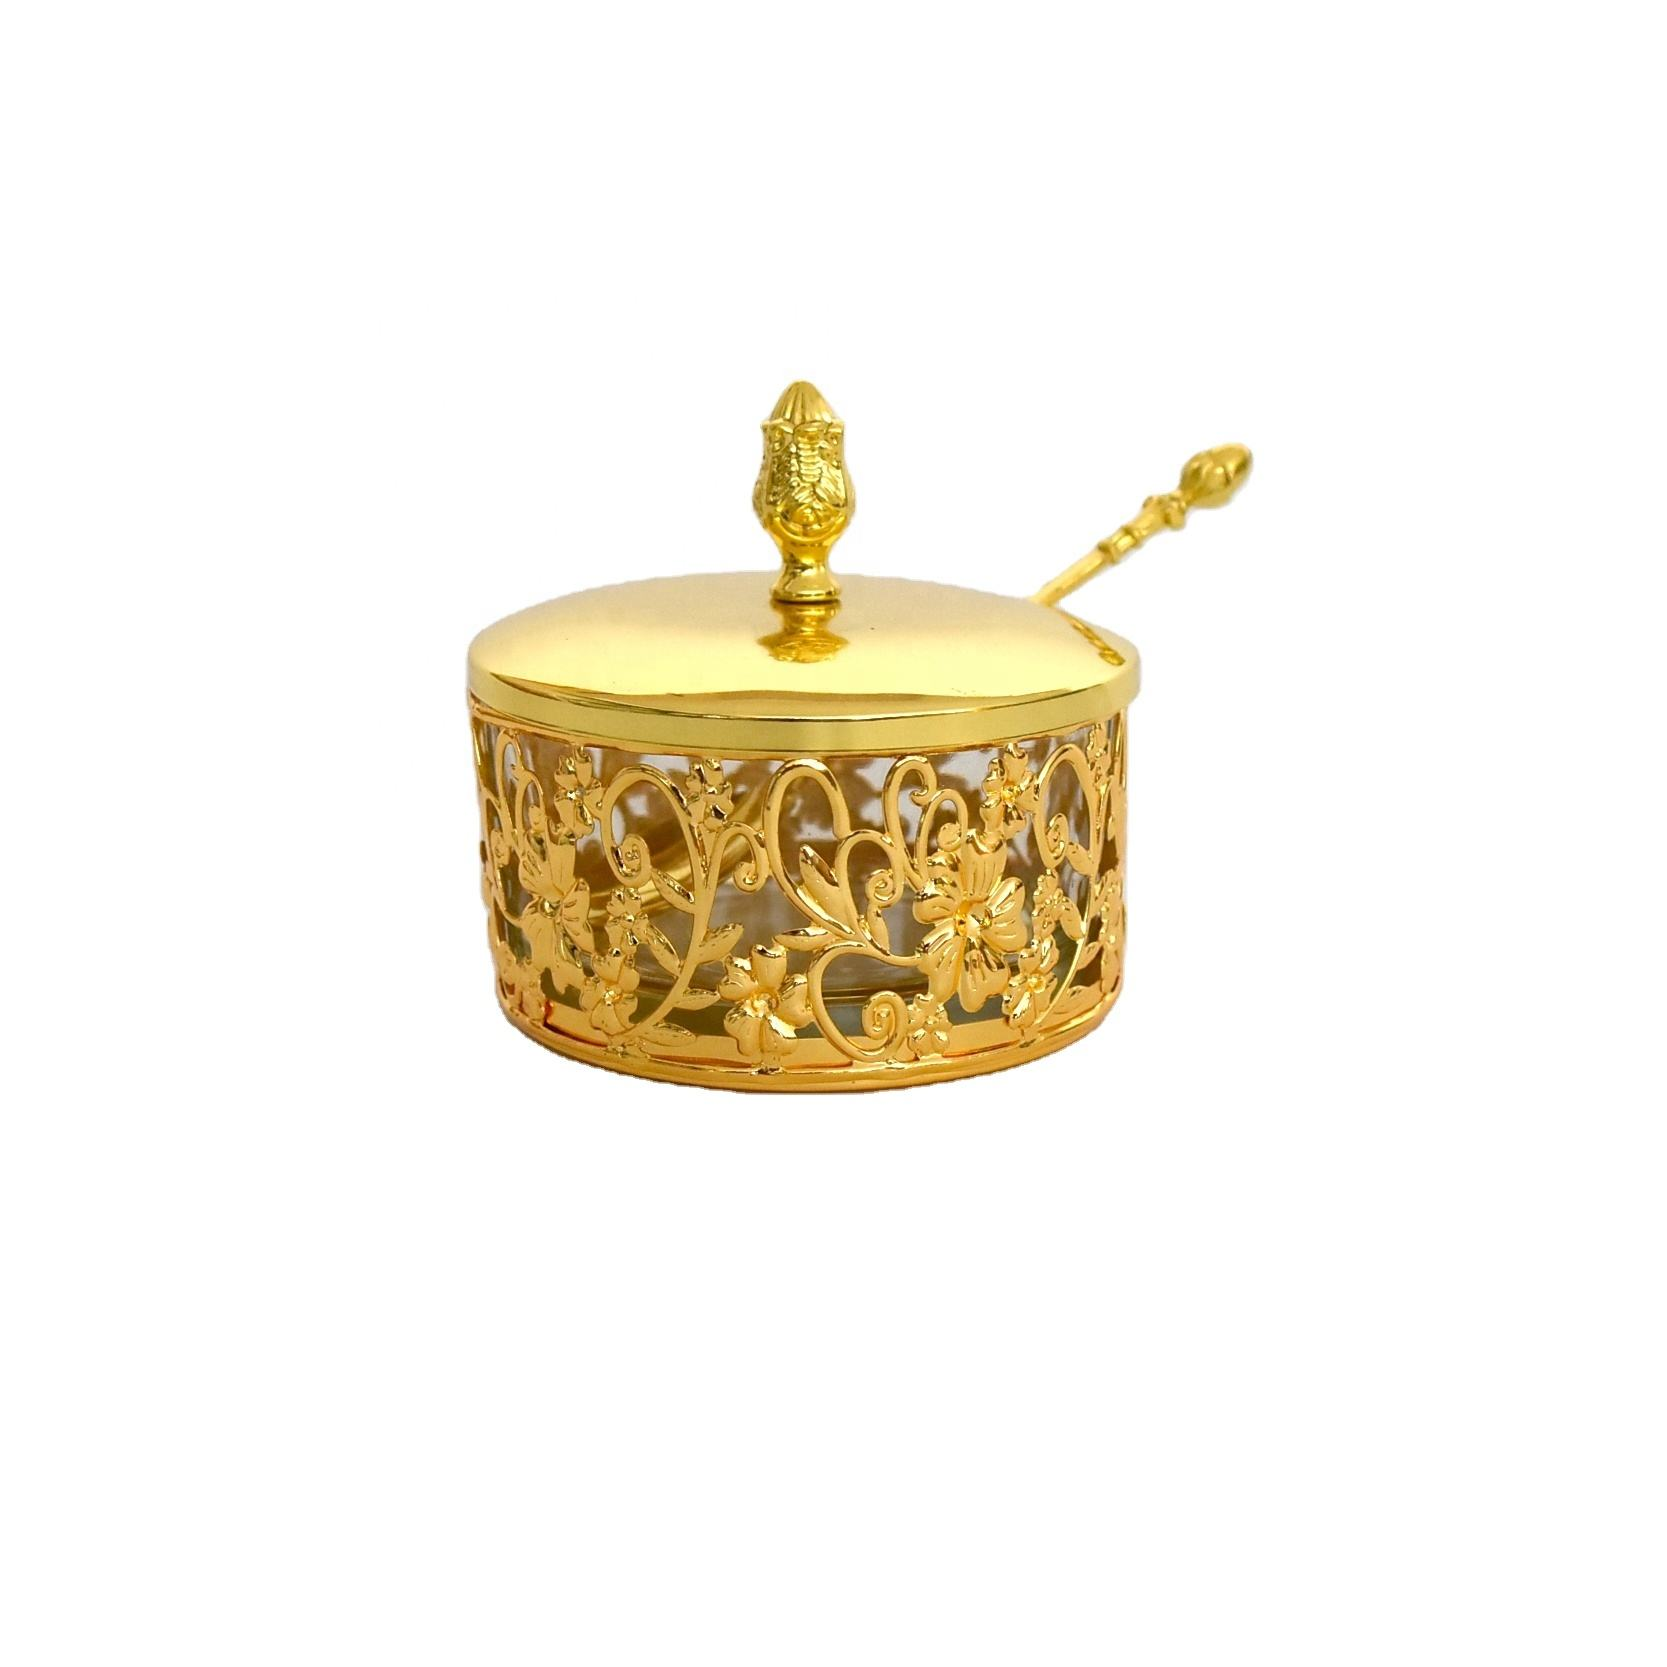 Gold plated flower pot set housewarming return gift dinnerware candy sugar pot